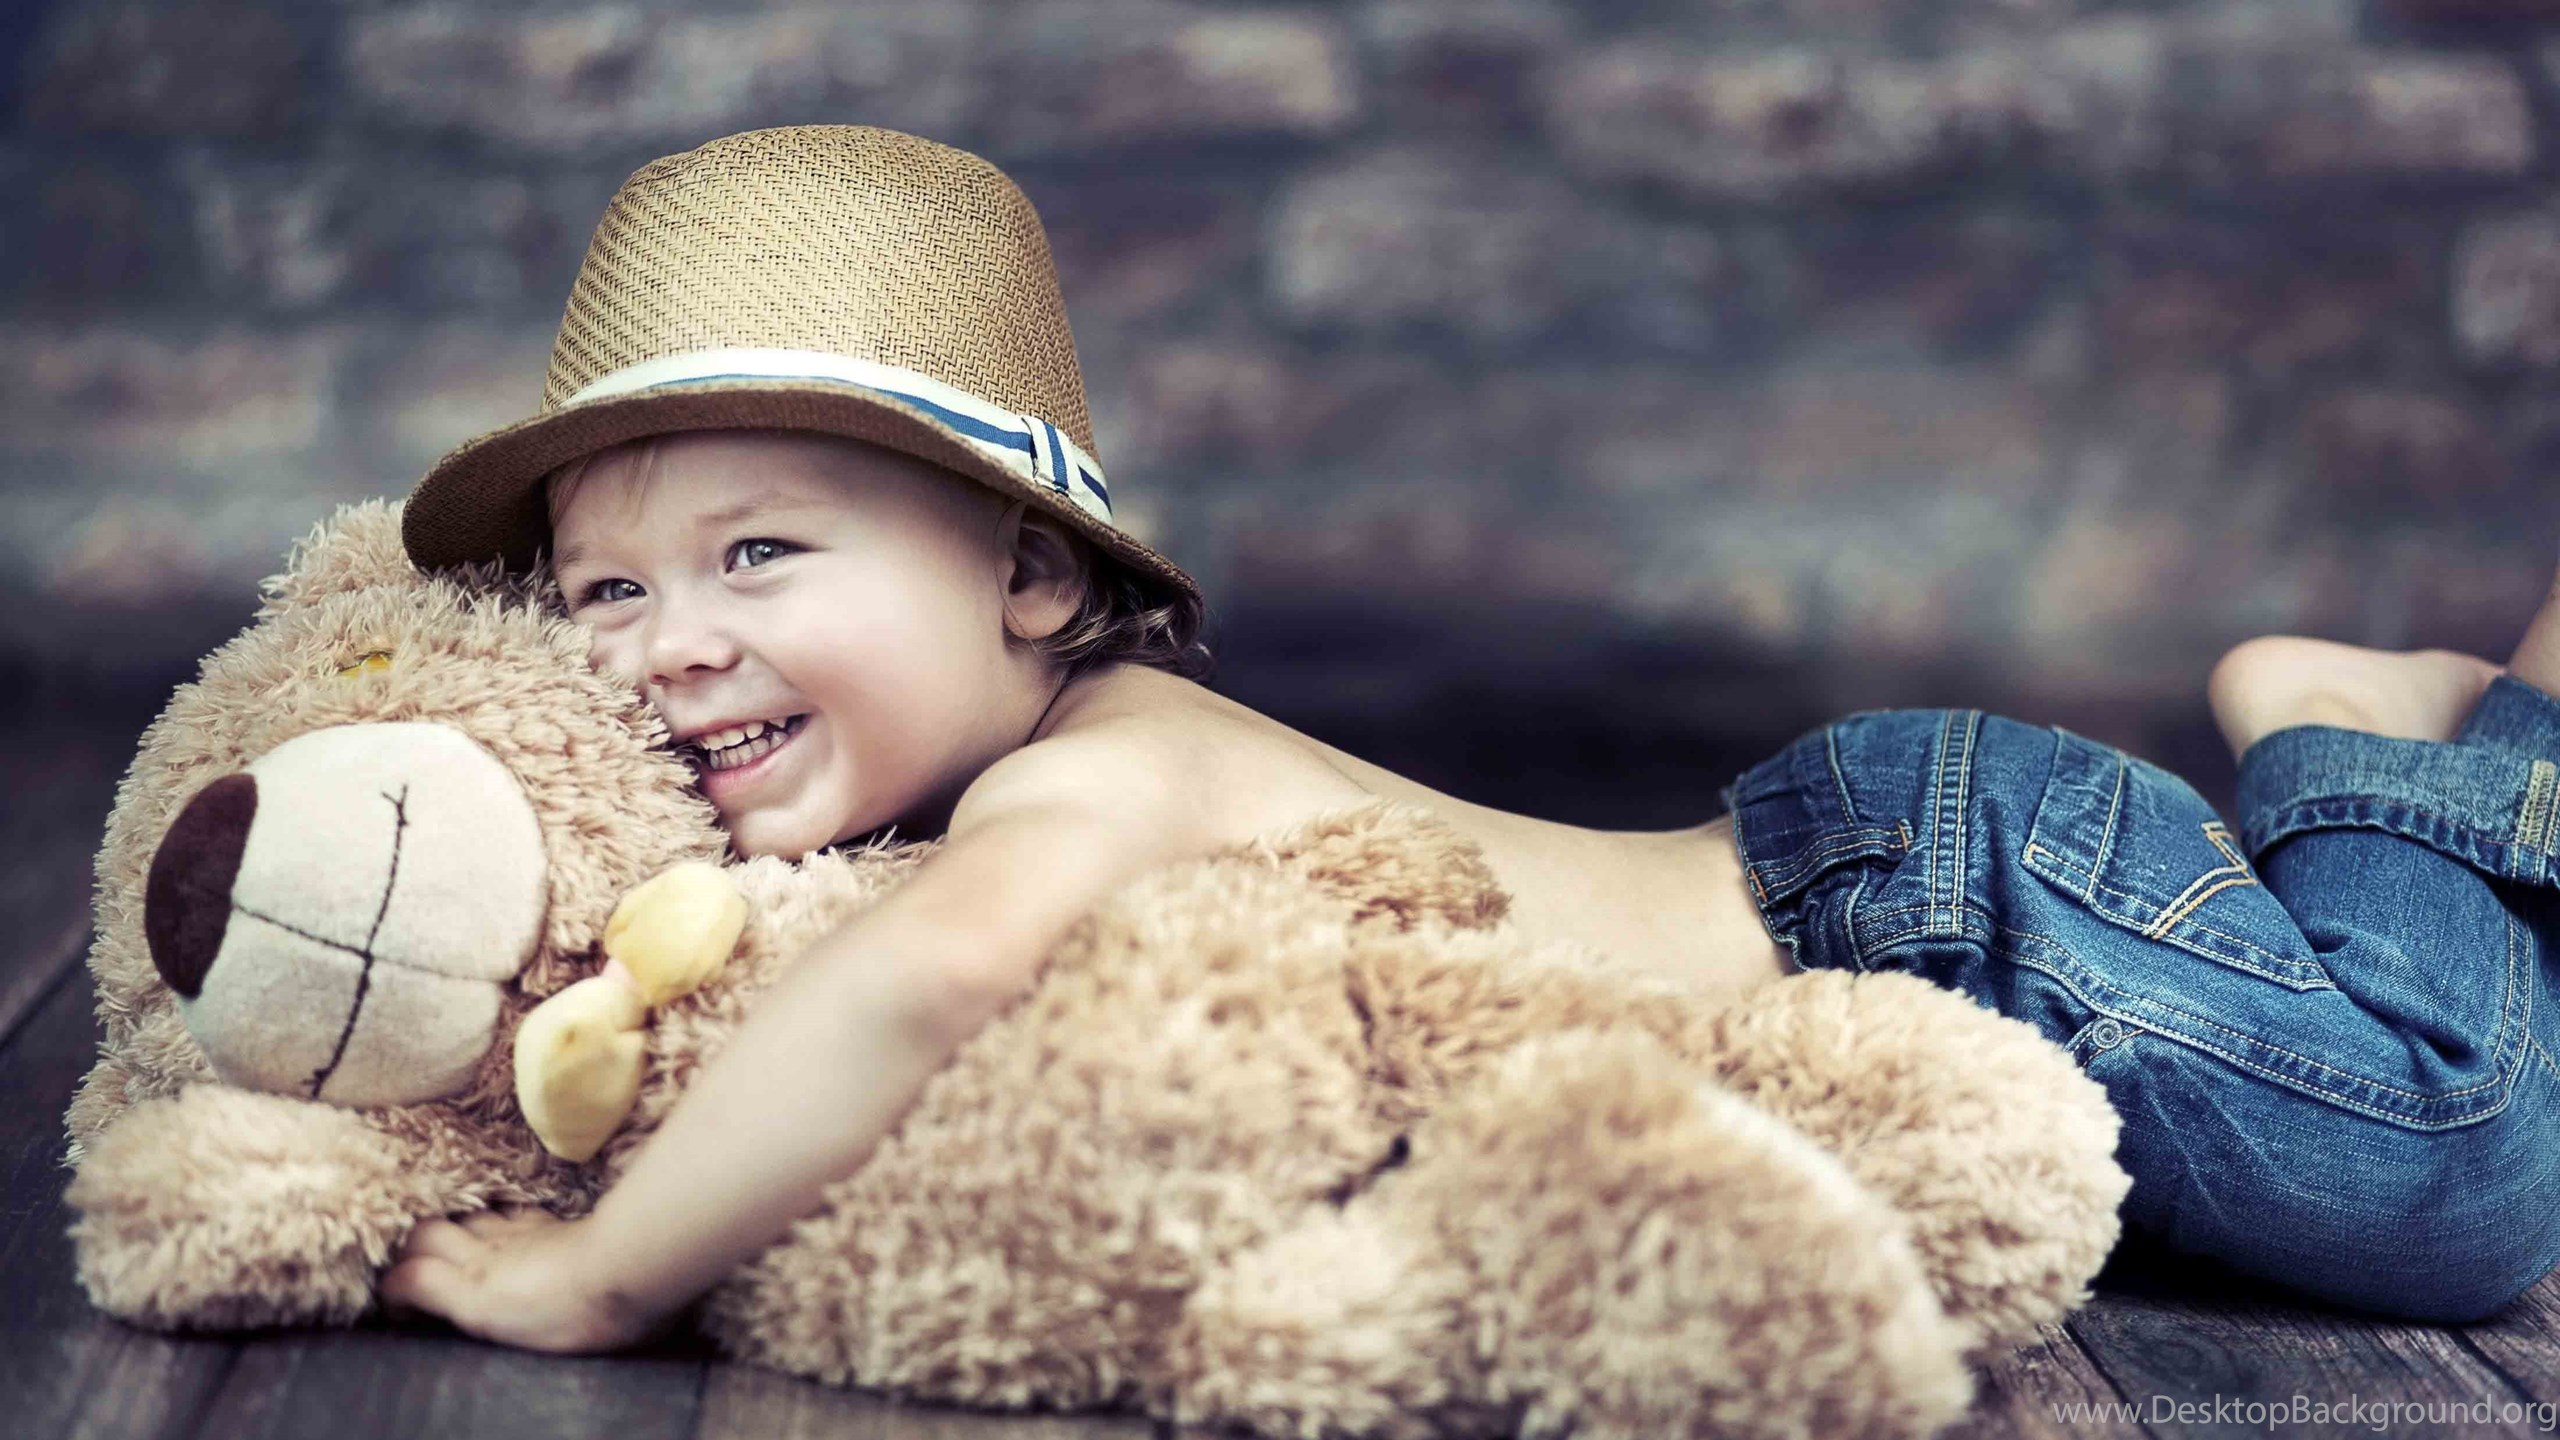 teddy bear, cute boy, hd, wallpapers desktop background